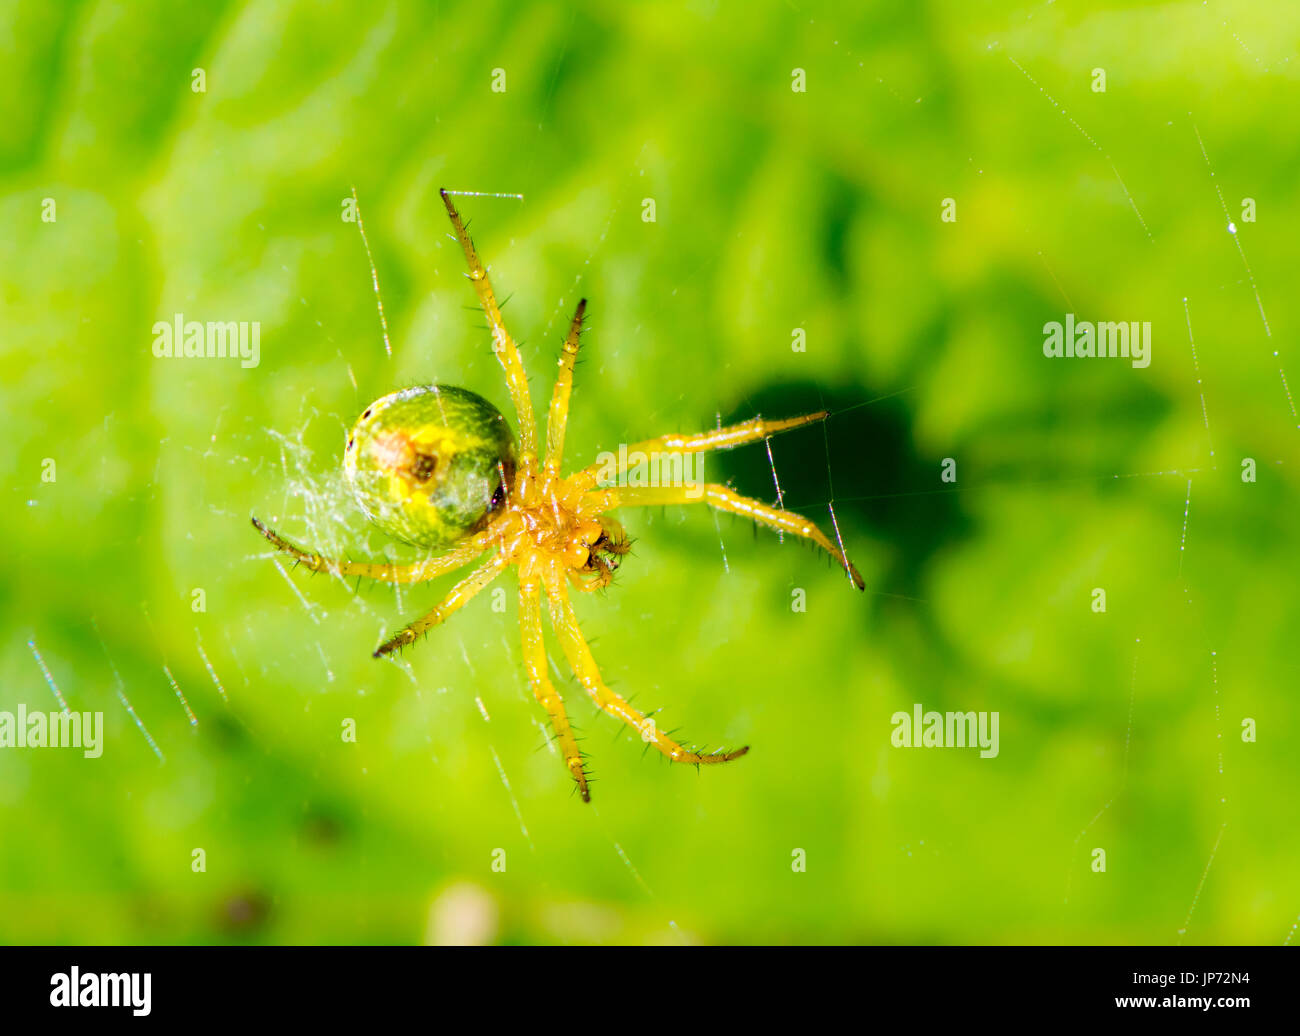 cucumber green spider in its web - Stock Image